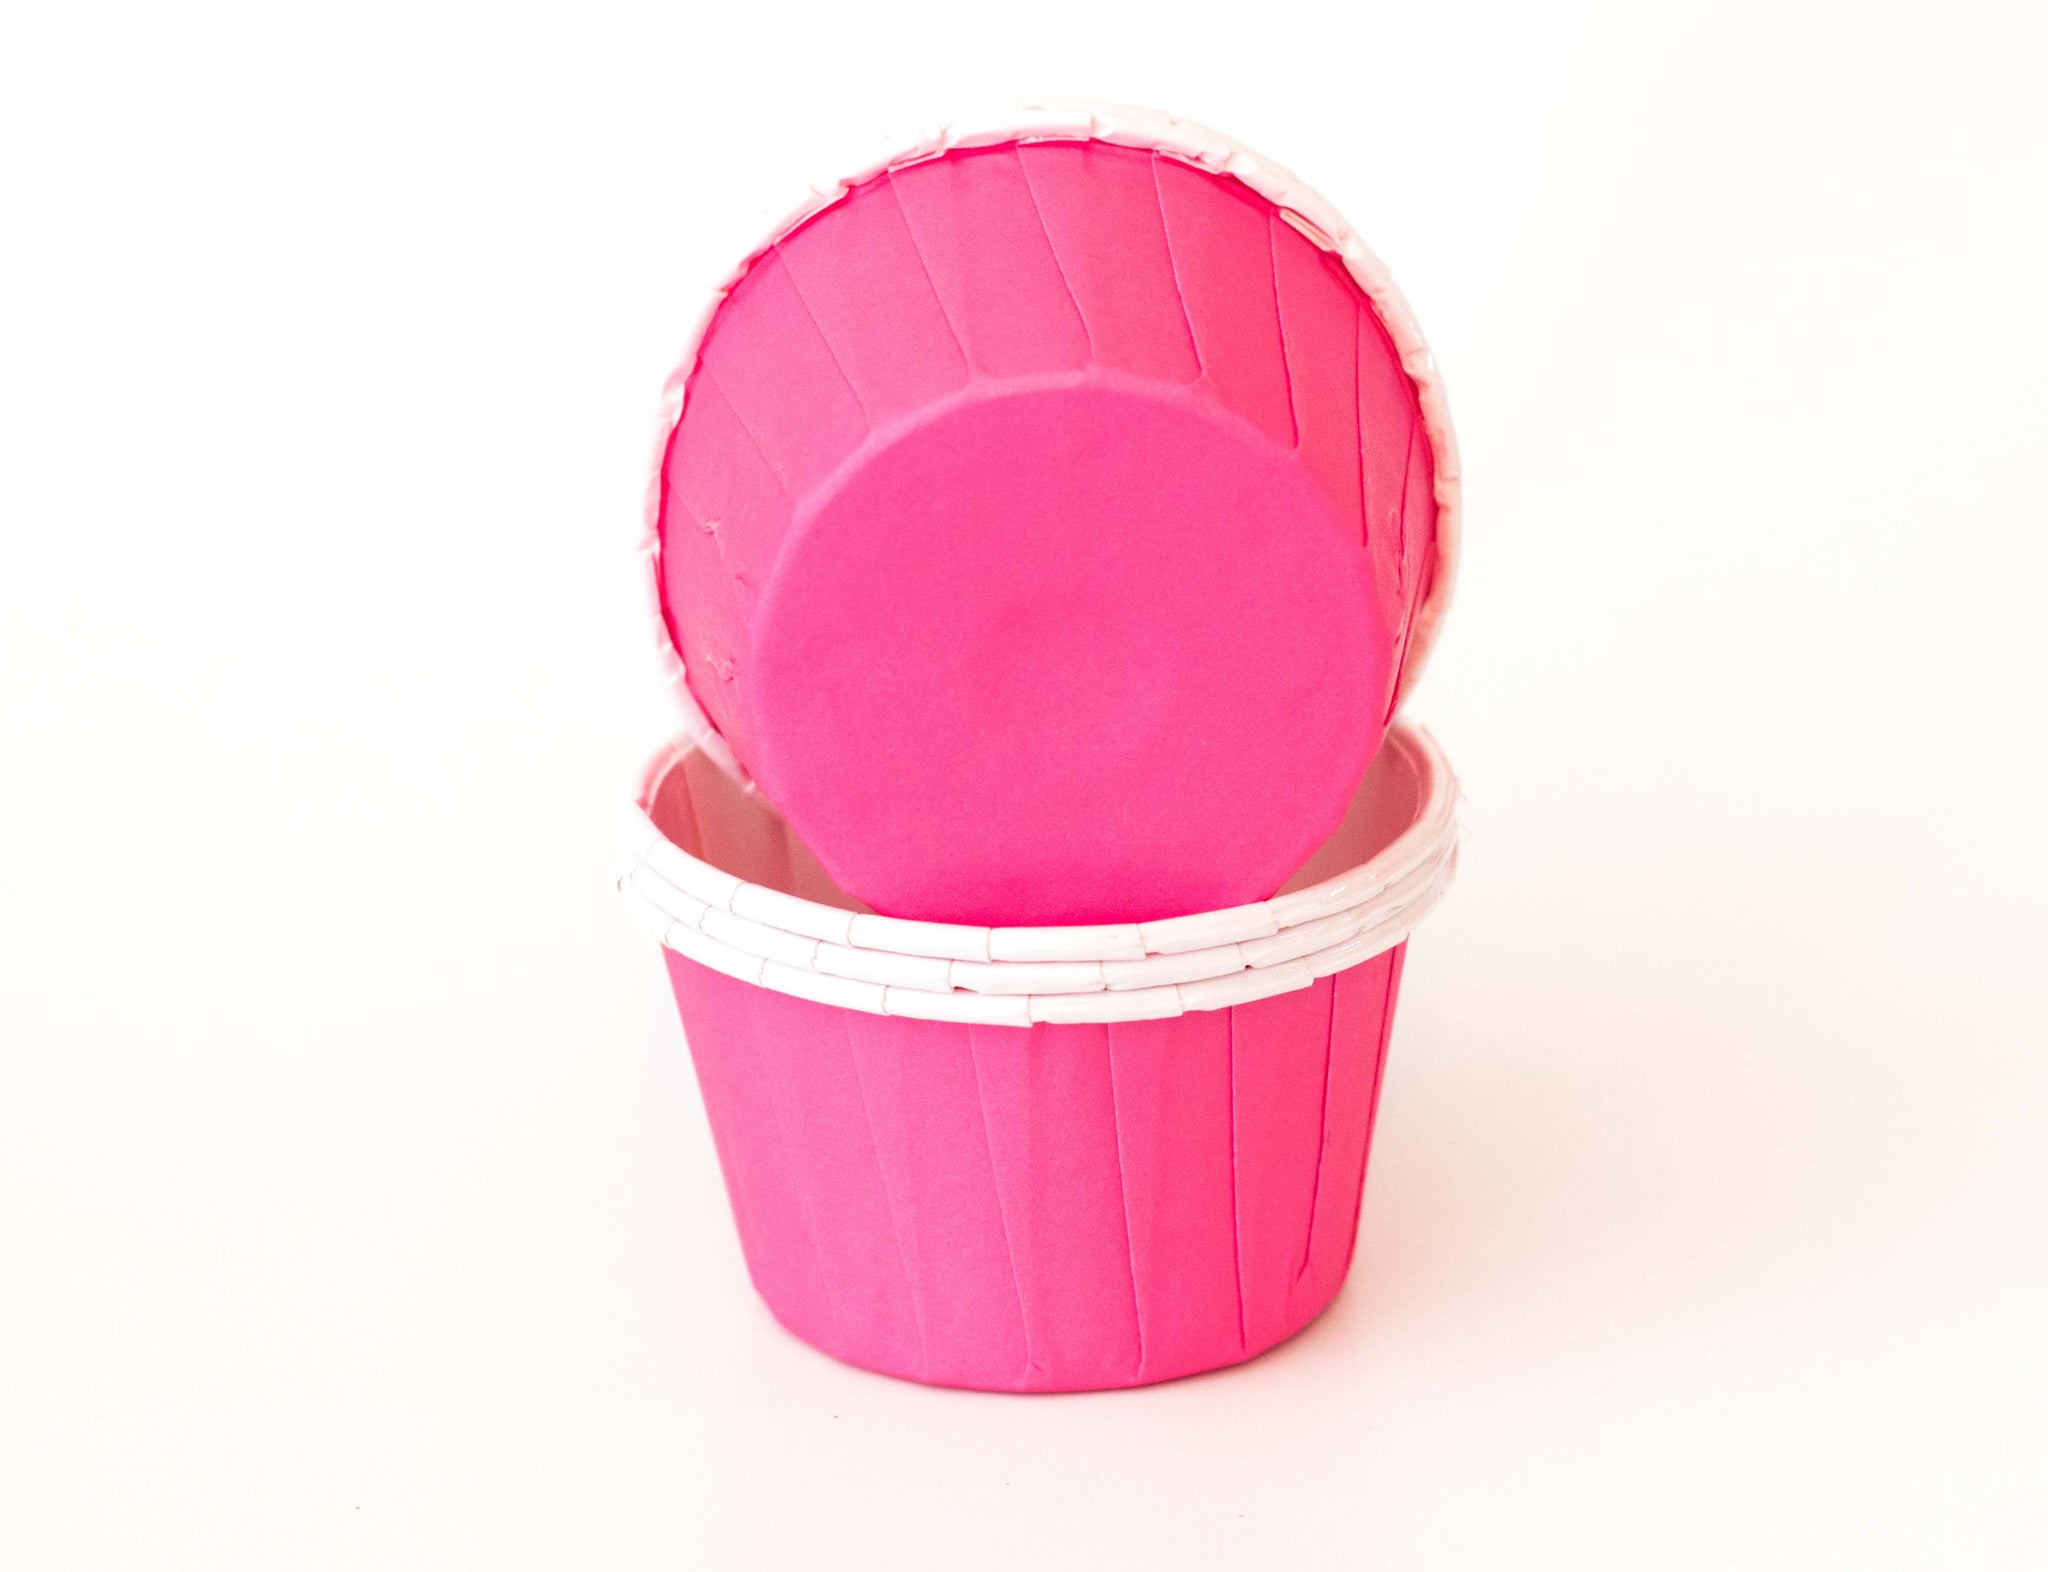 Baking Cups - Bright Pink - Pkg of 24